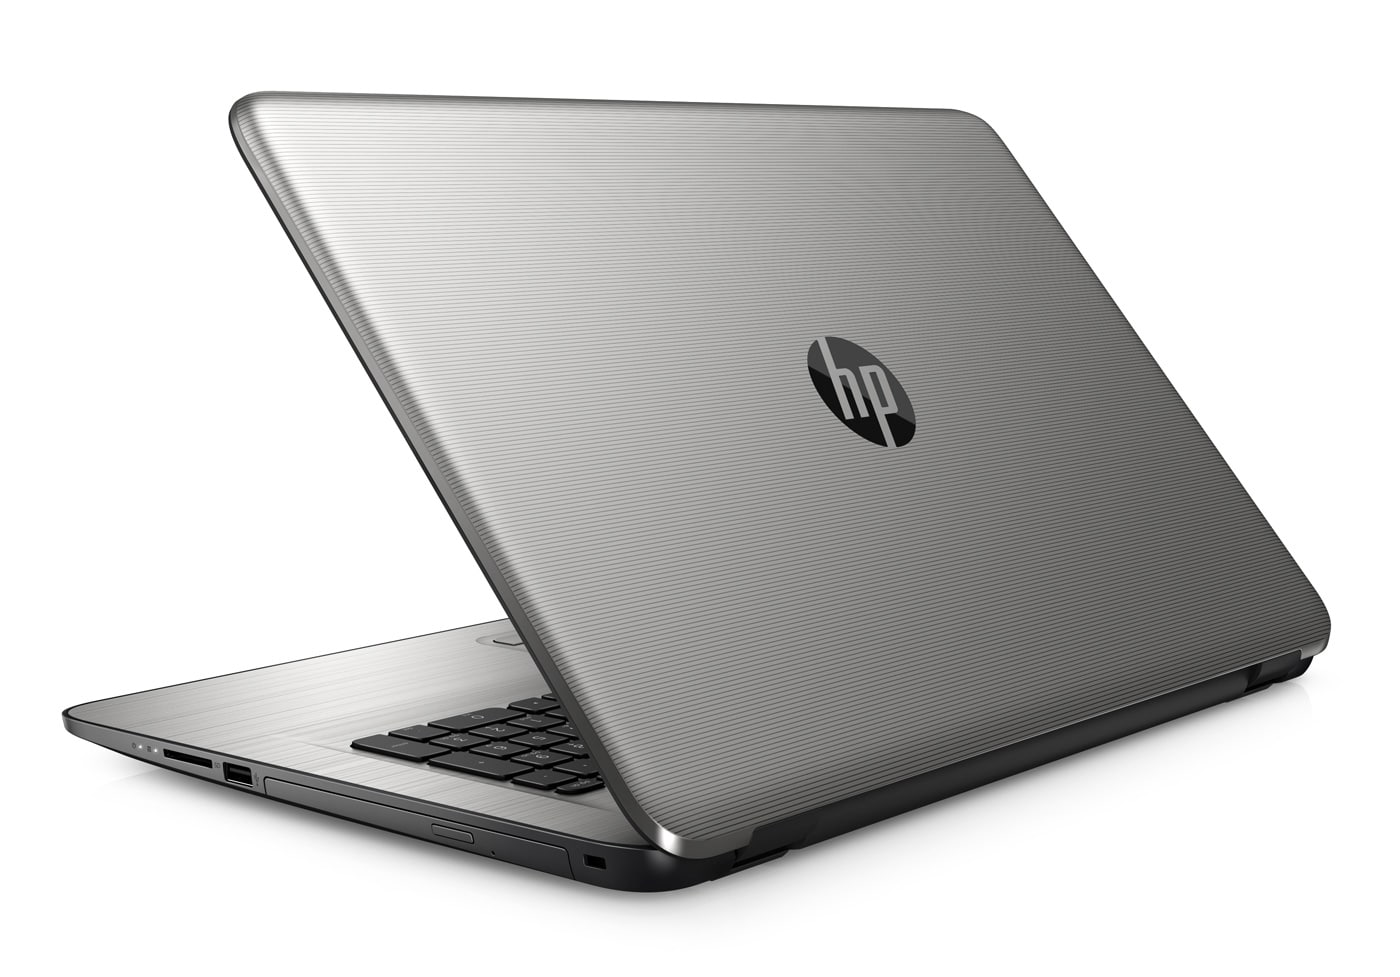 HP 17-x125nf, PC portable 17 pouces Full IPS i7 Kaby 8 Go R5 à (769€)